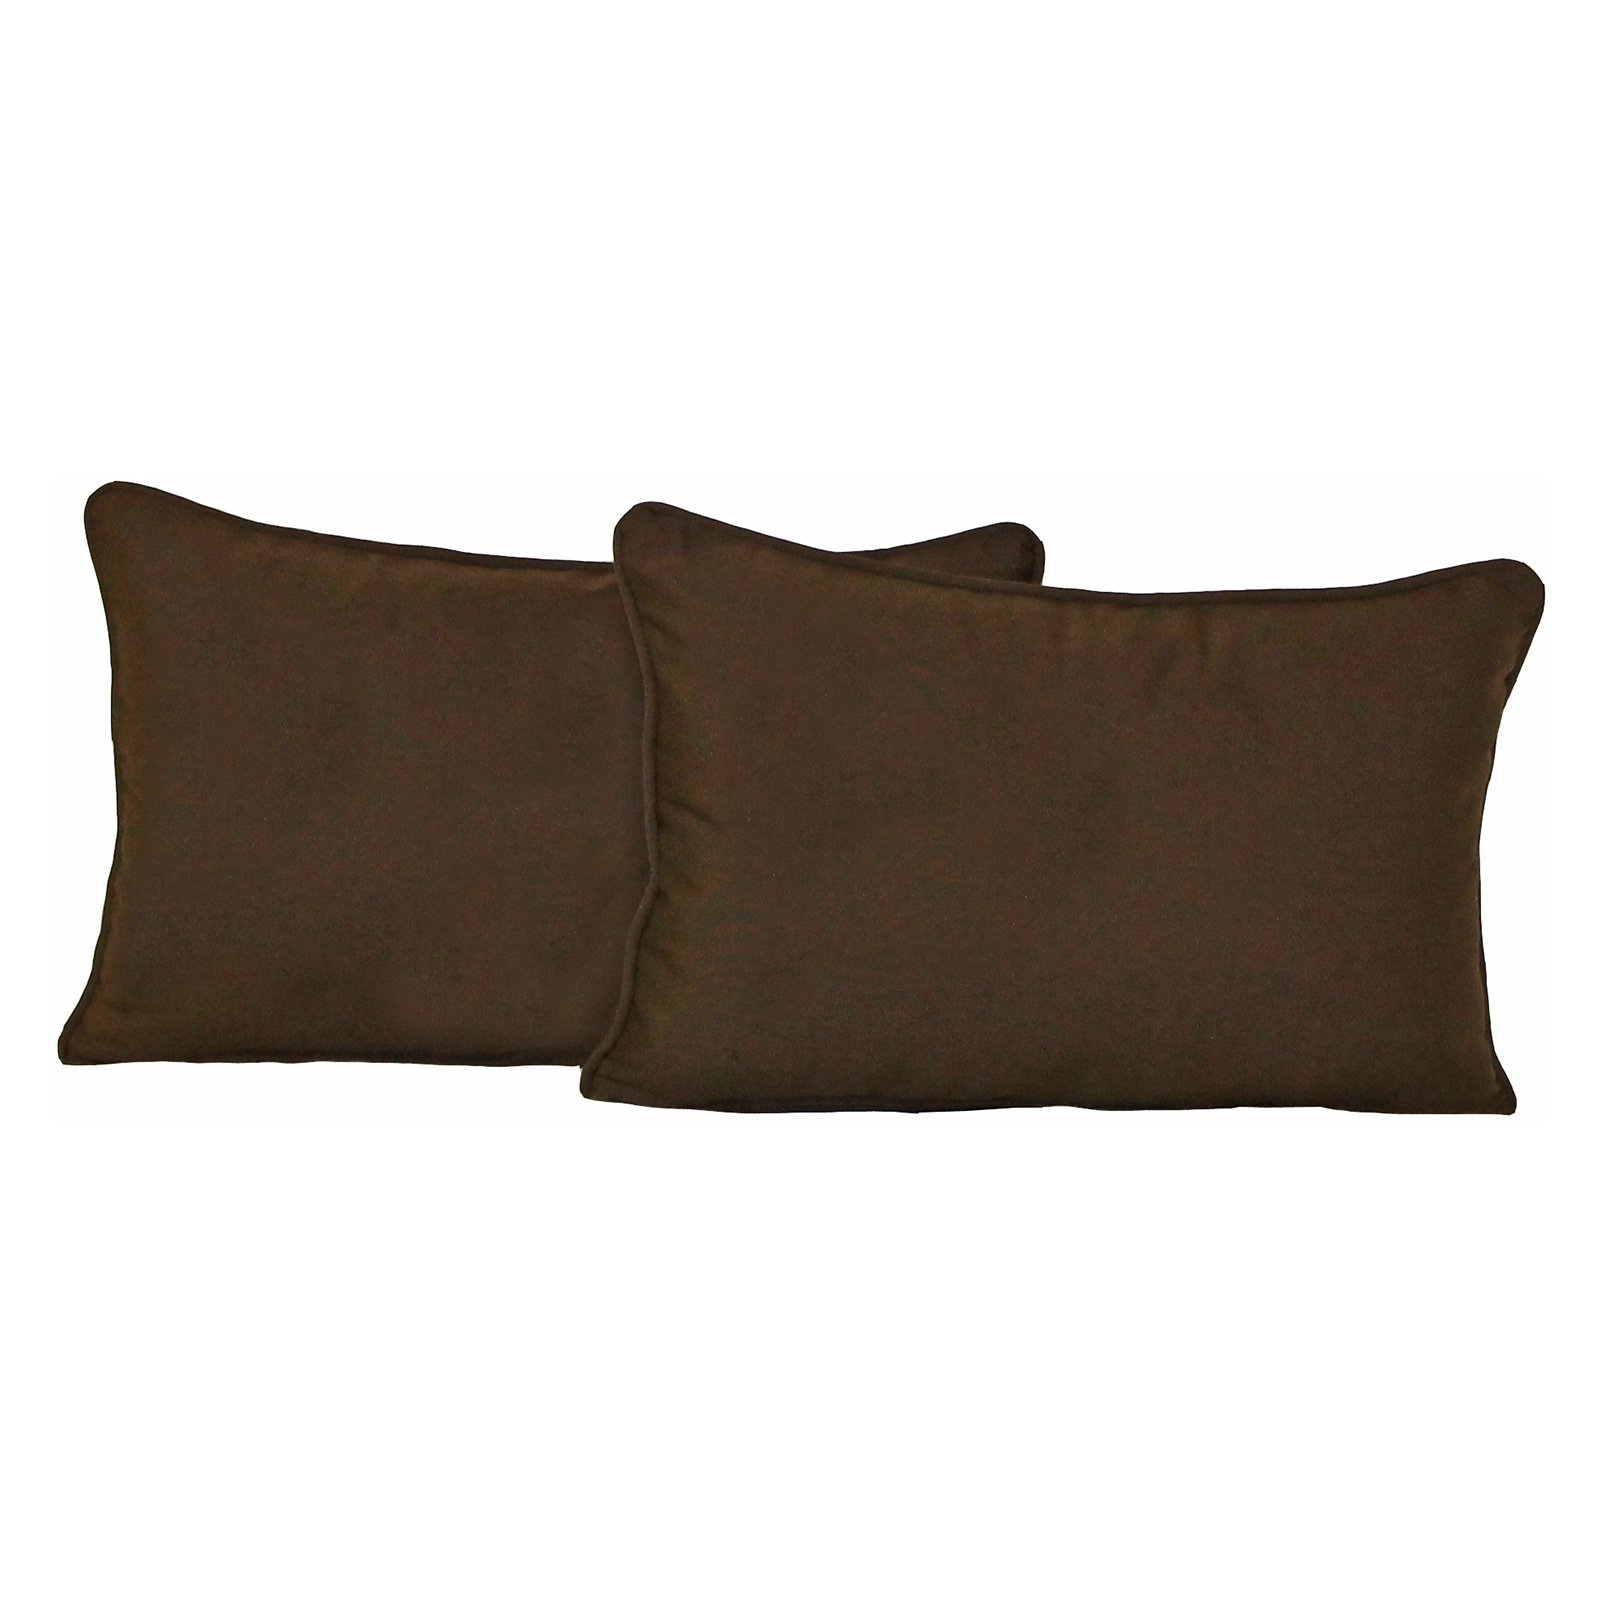 Blazing Needles 20 x 12 in. Twill Back Support Pillows with Cording - Set of 2